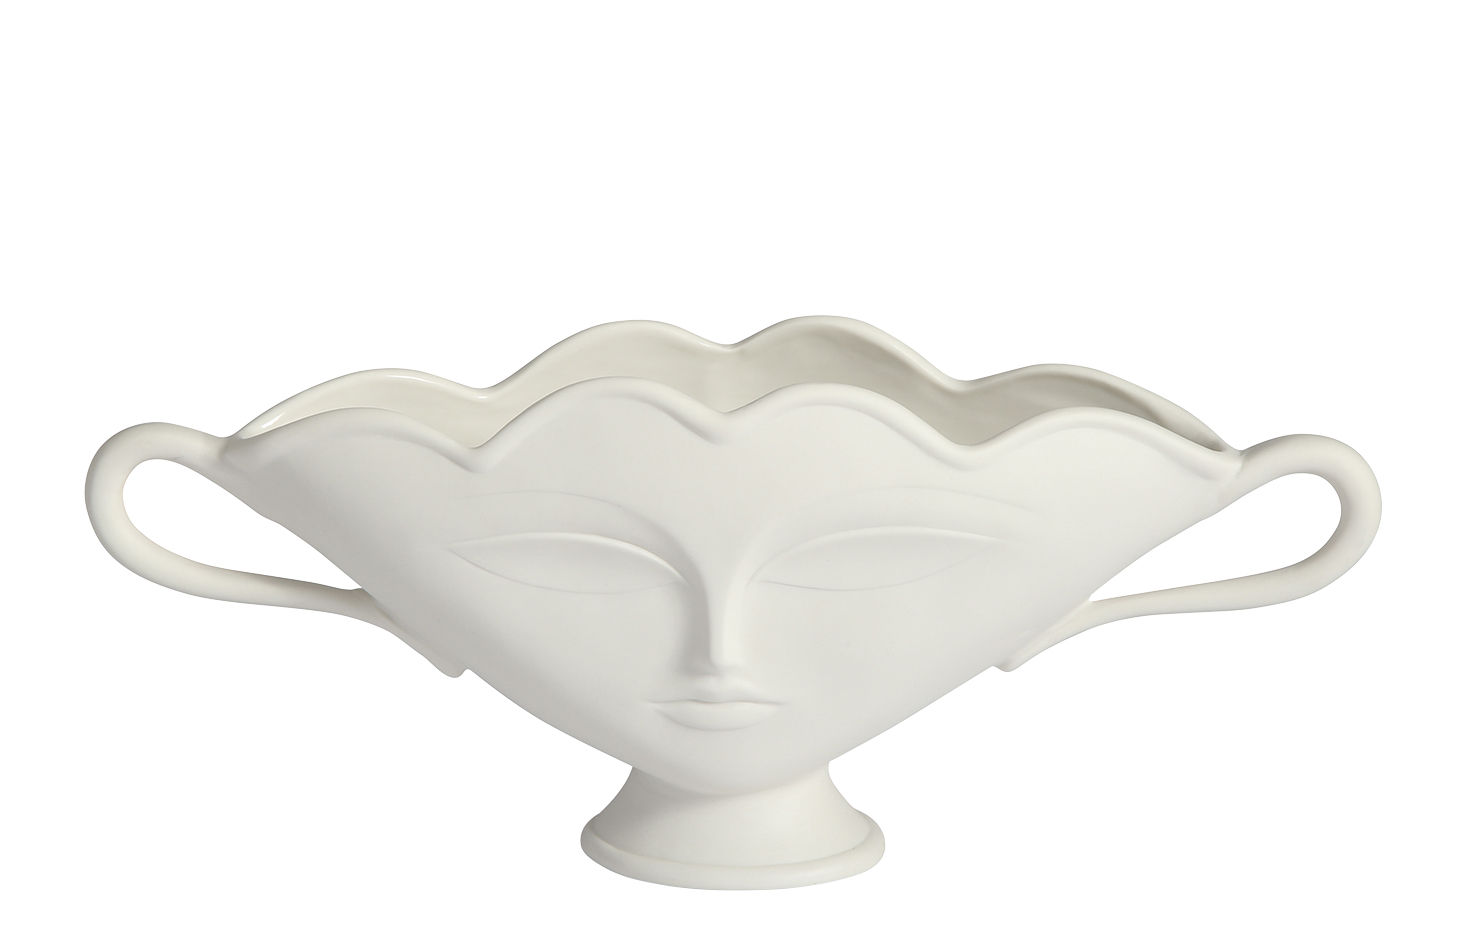 Decoration - Vases - Giuliette small Bowl - / Vase - Faces in relief by Jonathan Adler - White - China